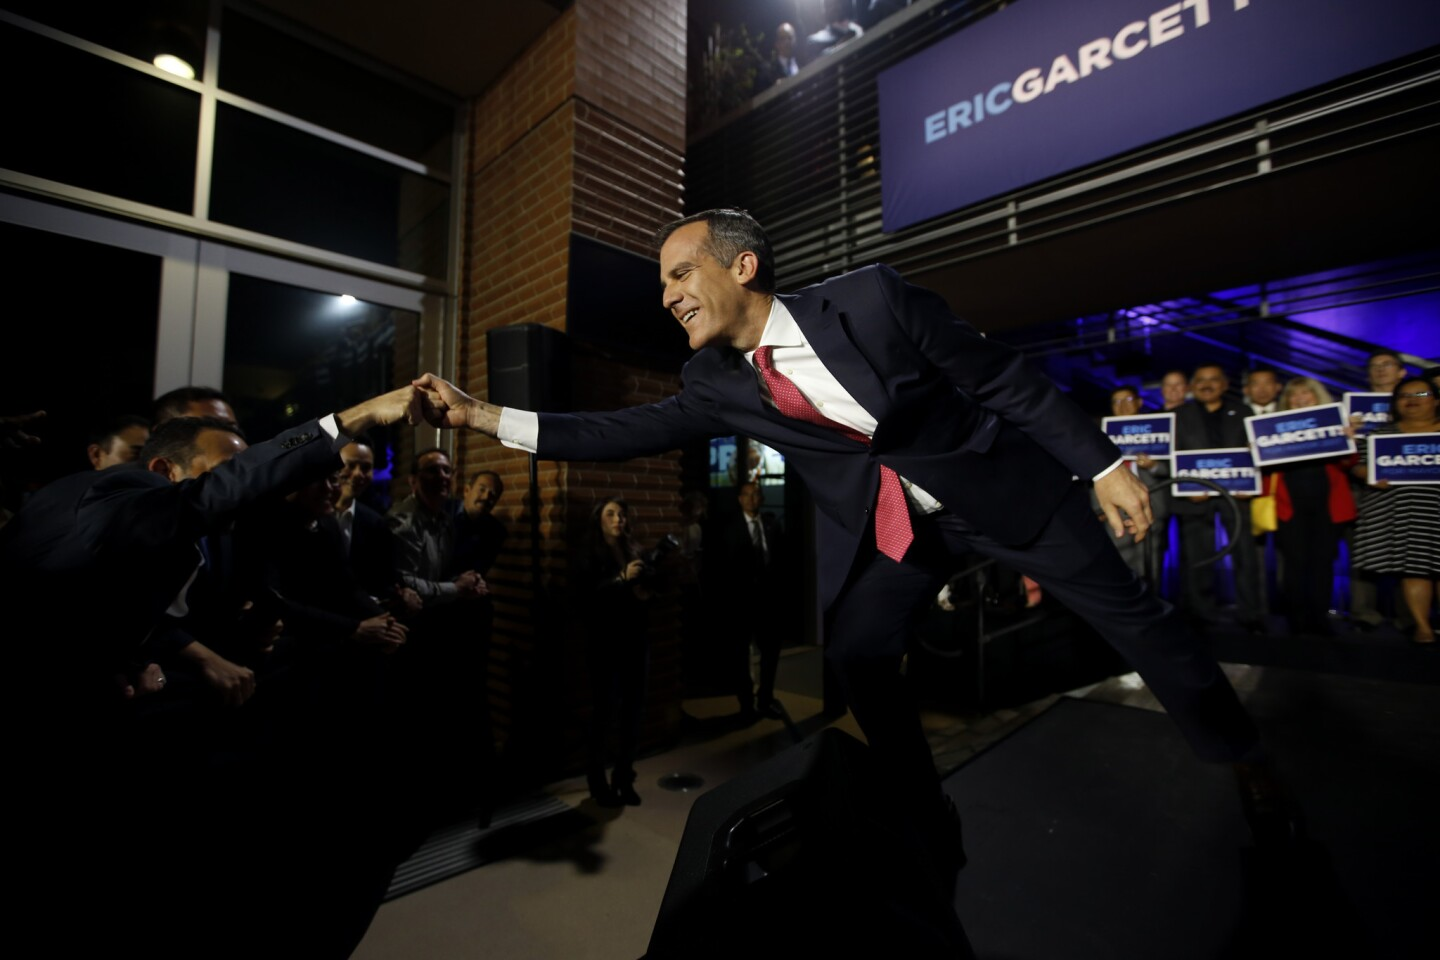 Los Angeles Mayor Eric Garcetti greets the crowd during an election night party at Laborers' International Union of North America Local 300 Hall in the Pico Union neighborhood.